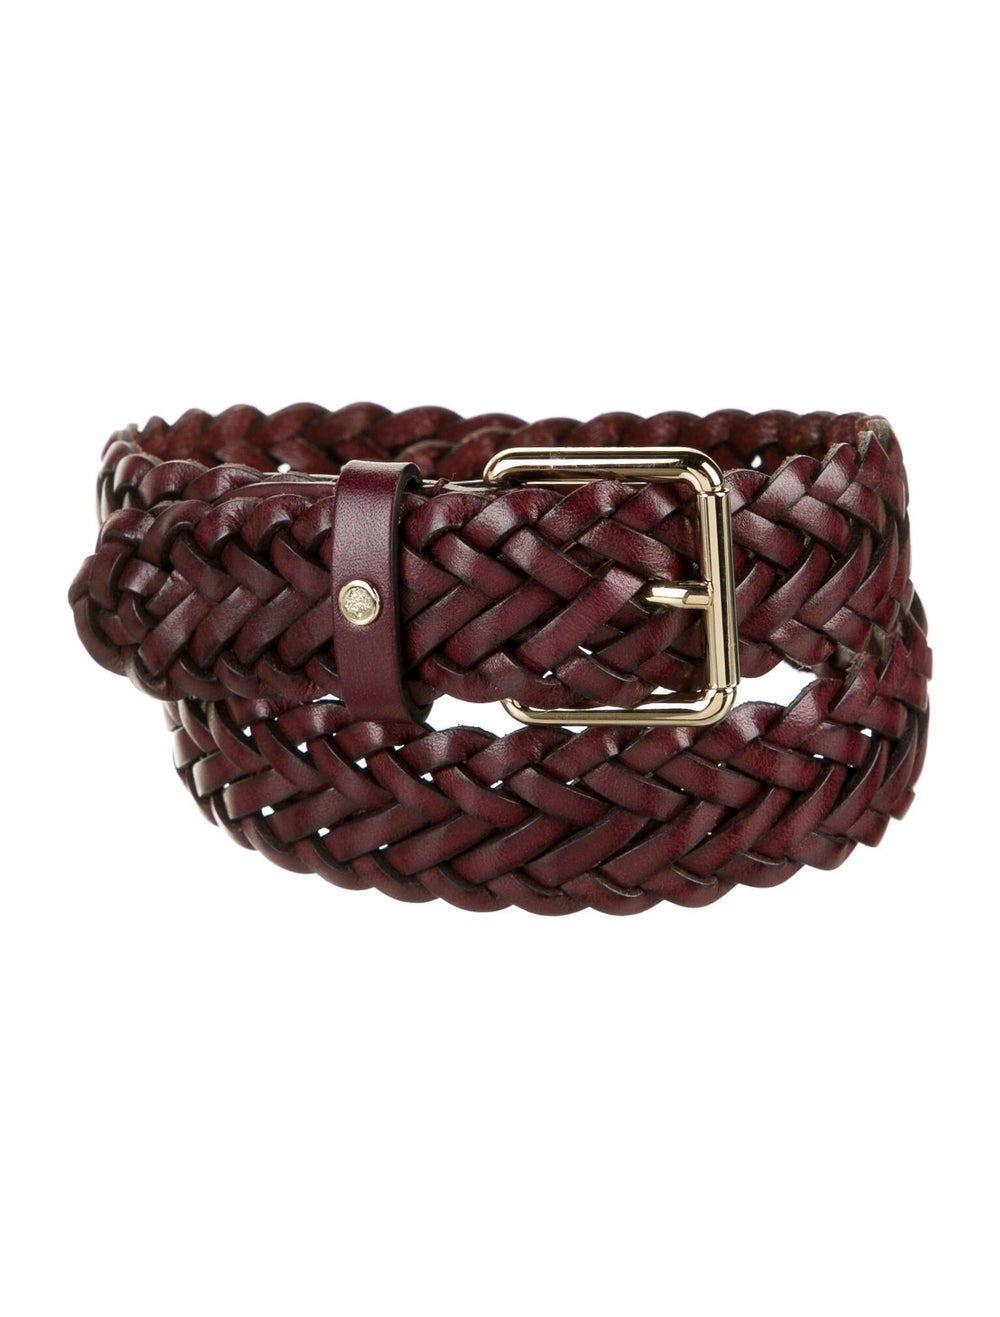 Mulberry Braided Leather Belt Gold - image 1